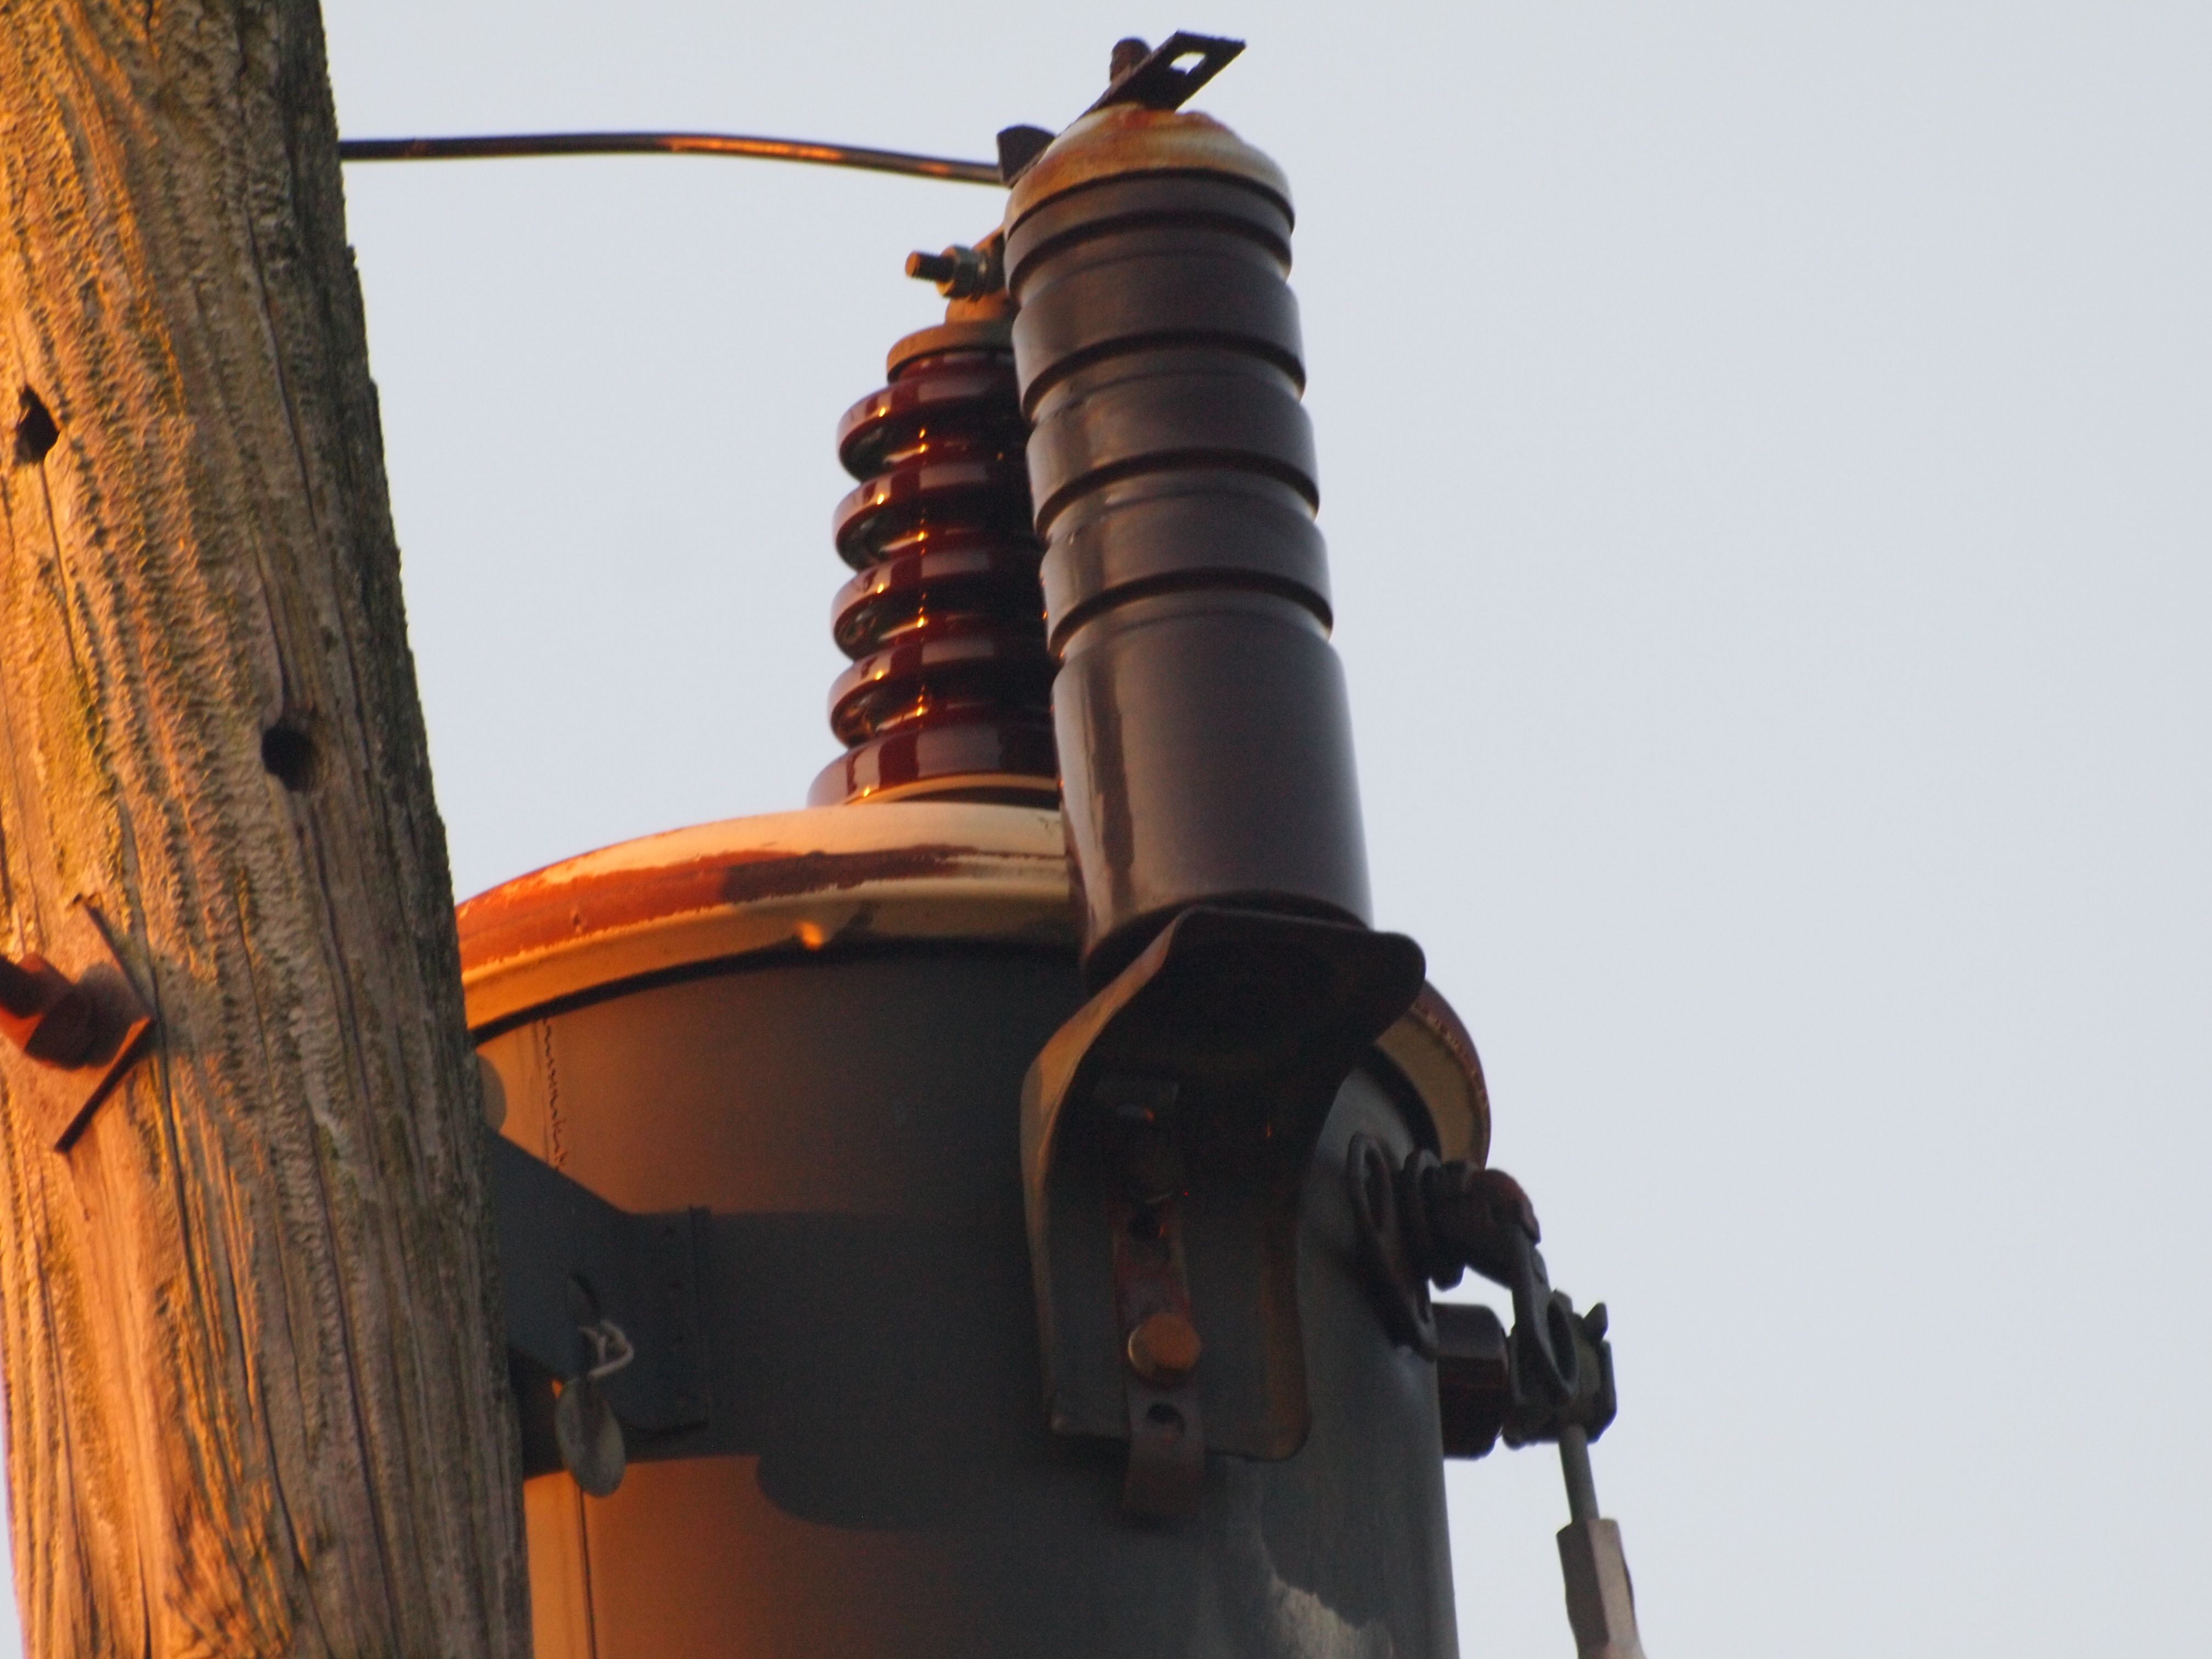 hight resolution of our electric transformer the line men say this type is so old they rarely come across them any more it will fry a squirrel knocking the electric here